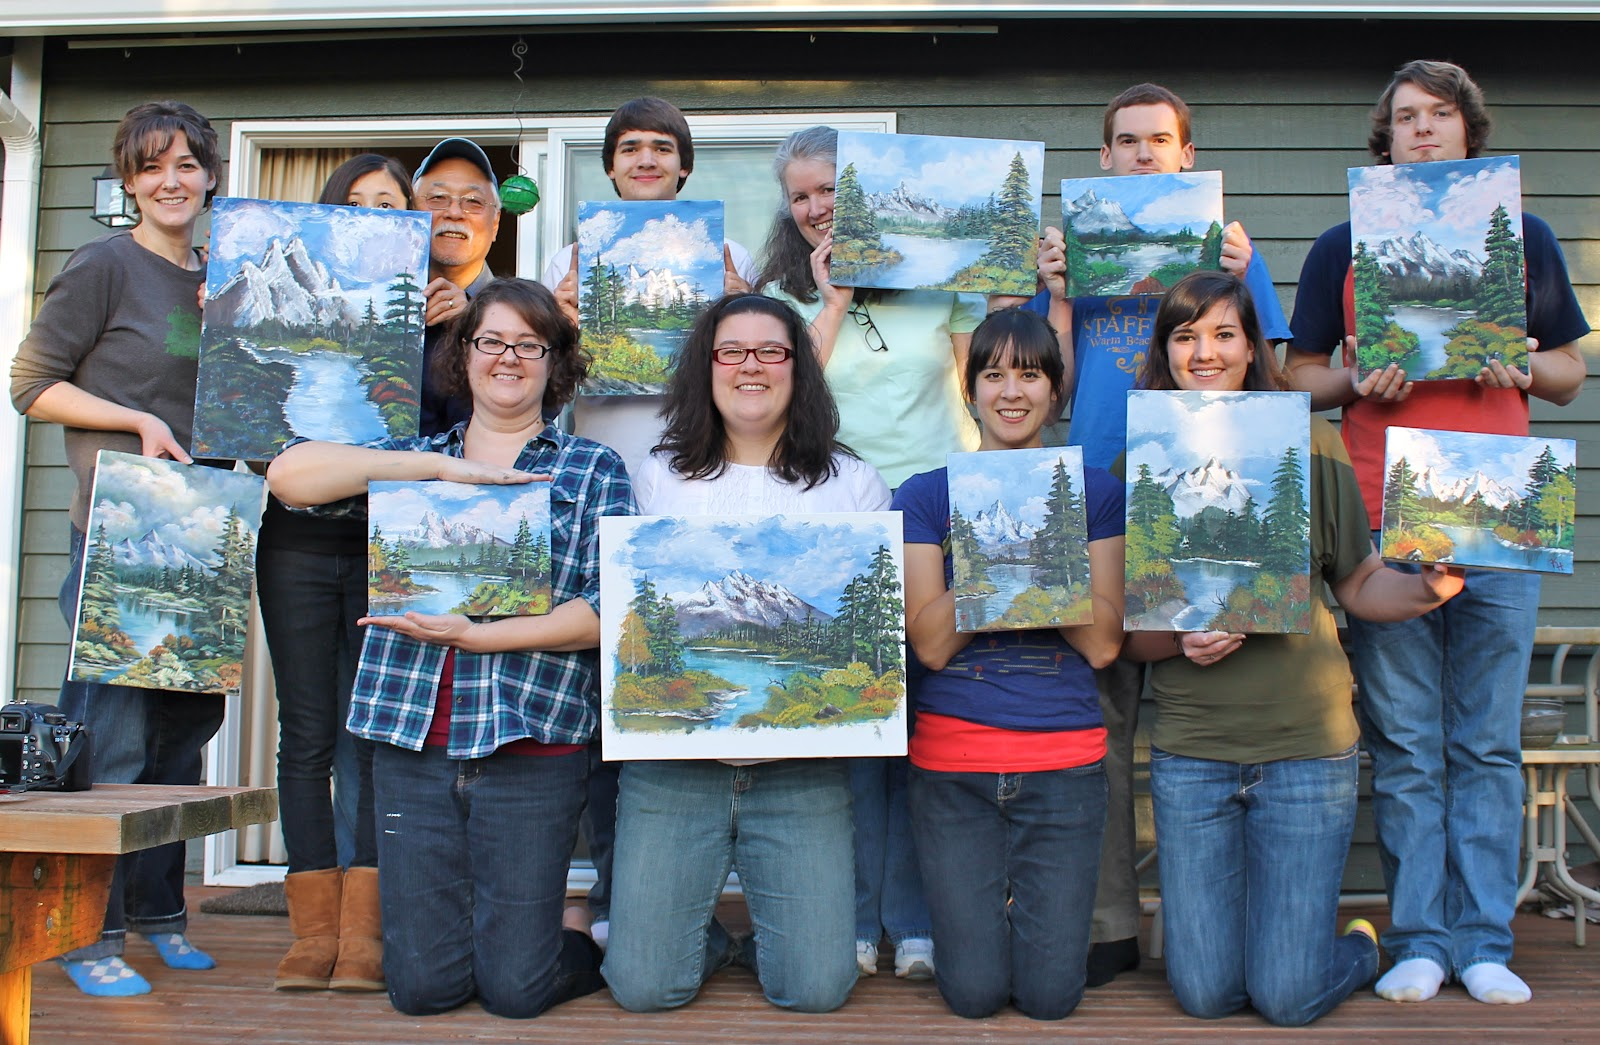 crown hill bob ross party